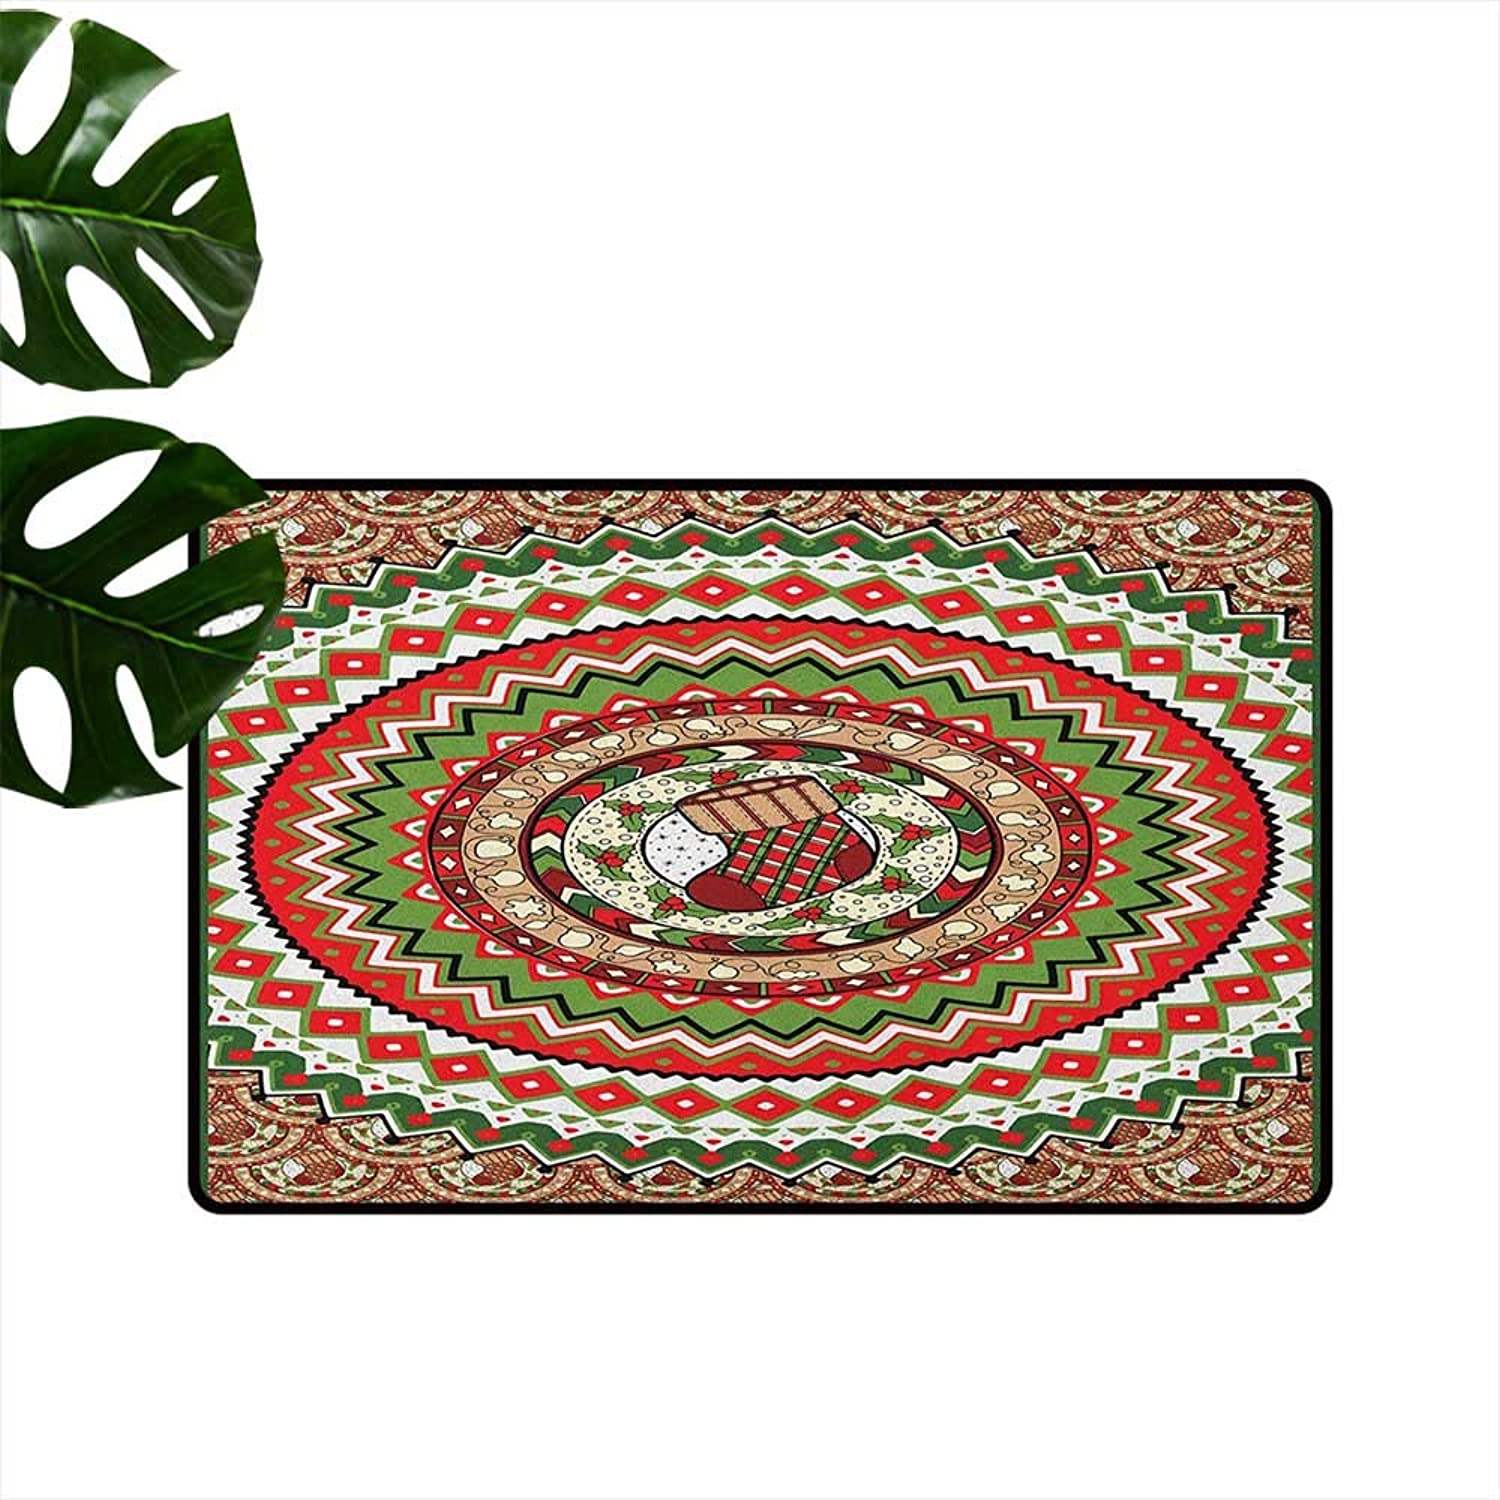 Christmas Entrance Door mat Nested Circles with Chevron Zigzag Lines Traditional Sock Mistletoe Berries Print Hard and wear Resistant W35 x L59 Multicolor